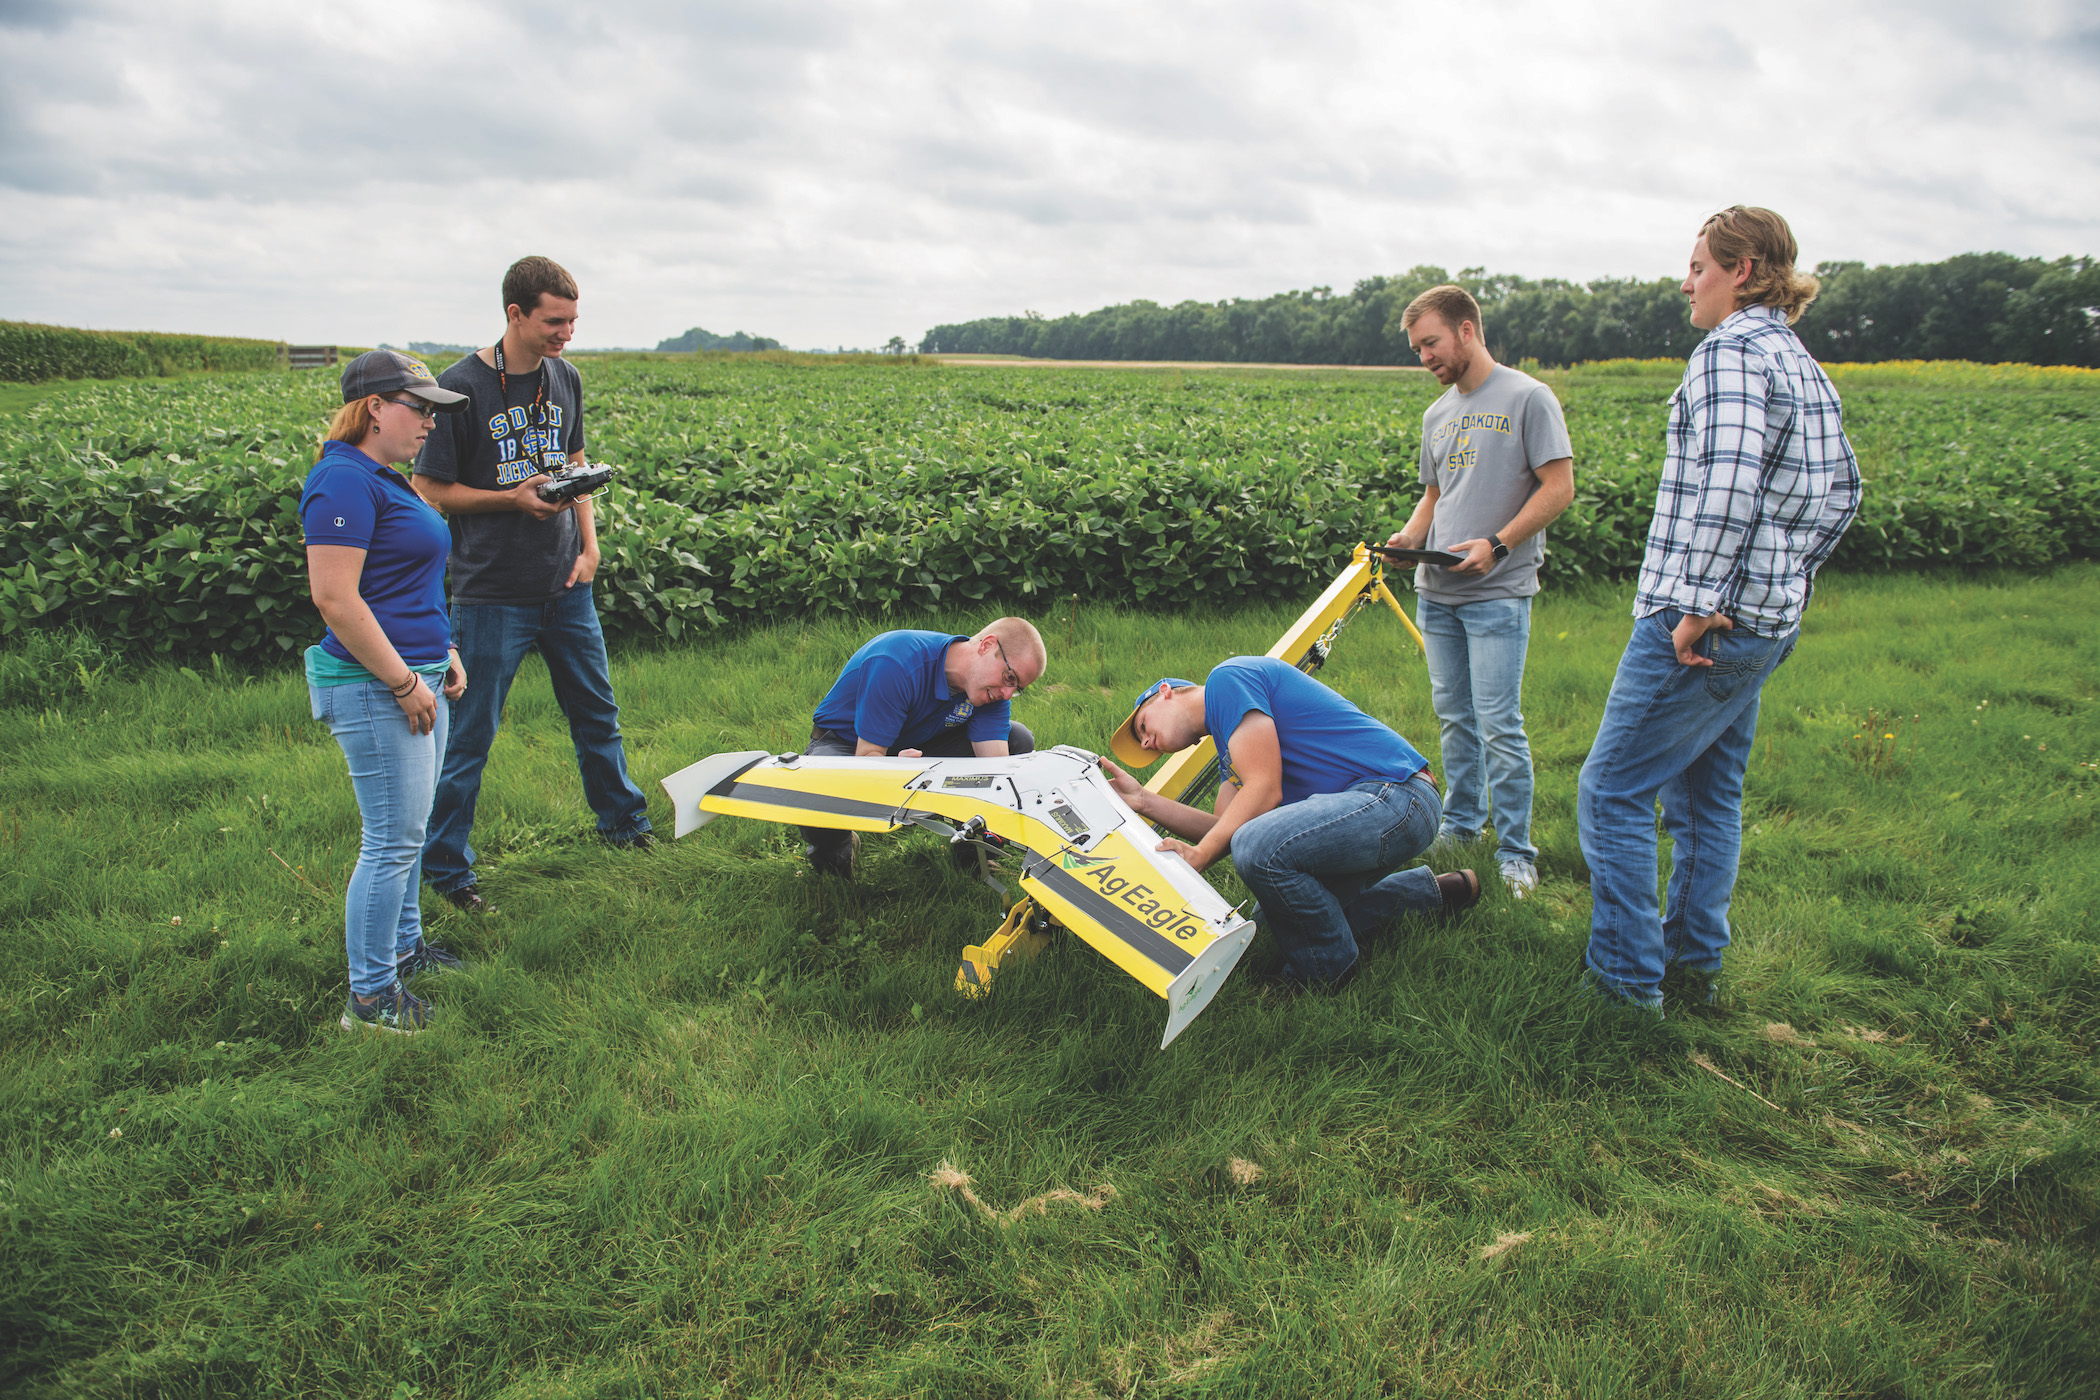 Precision Agriculture students